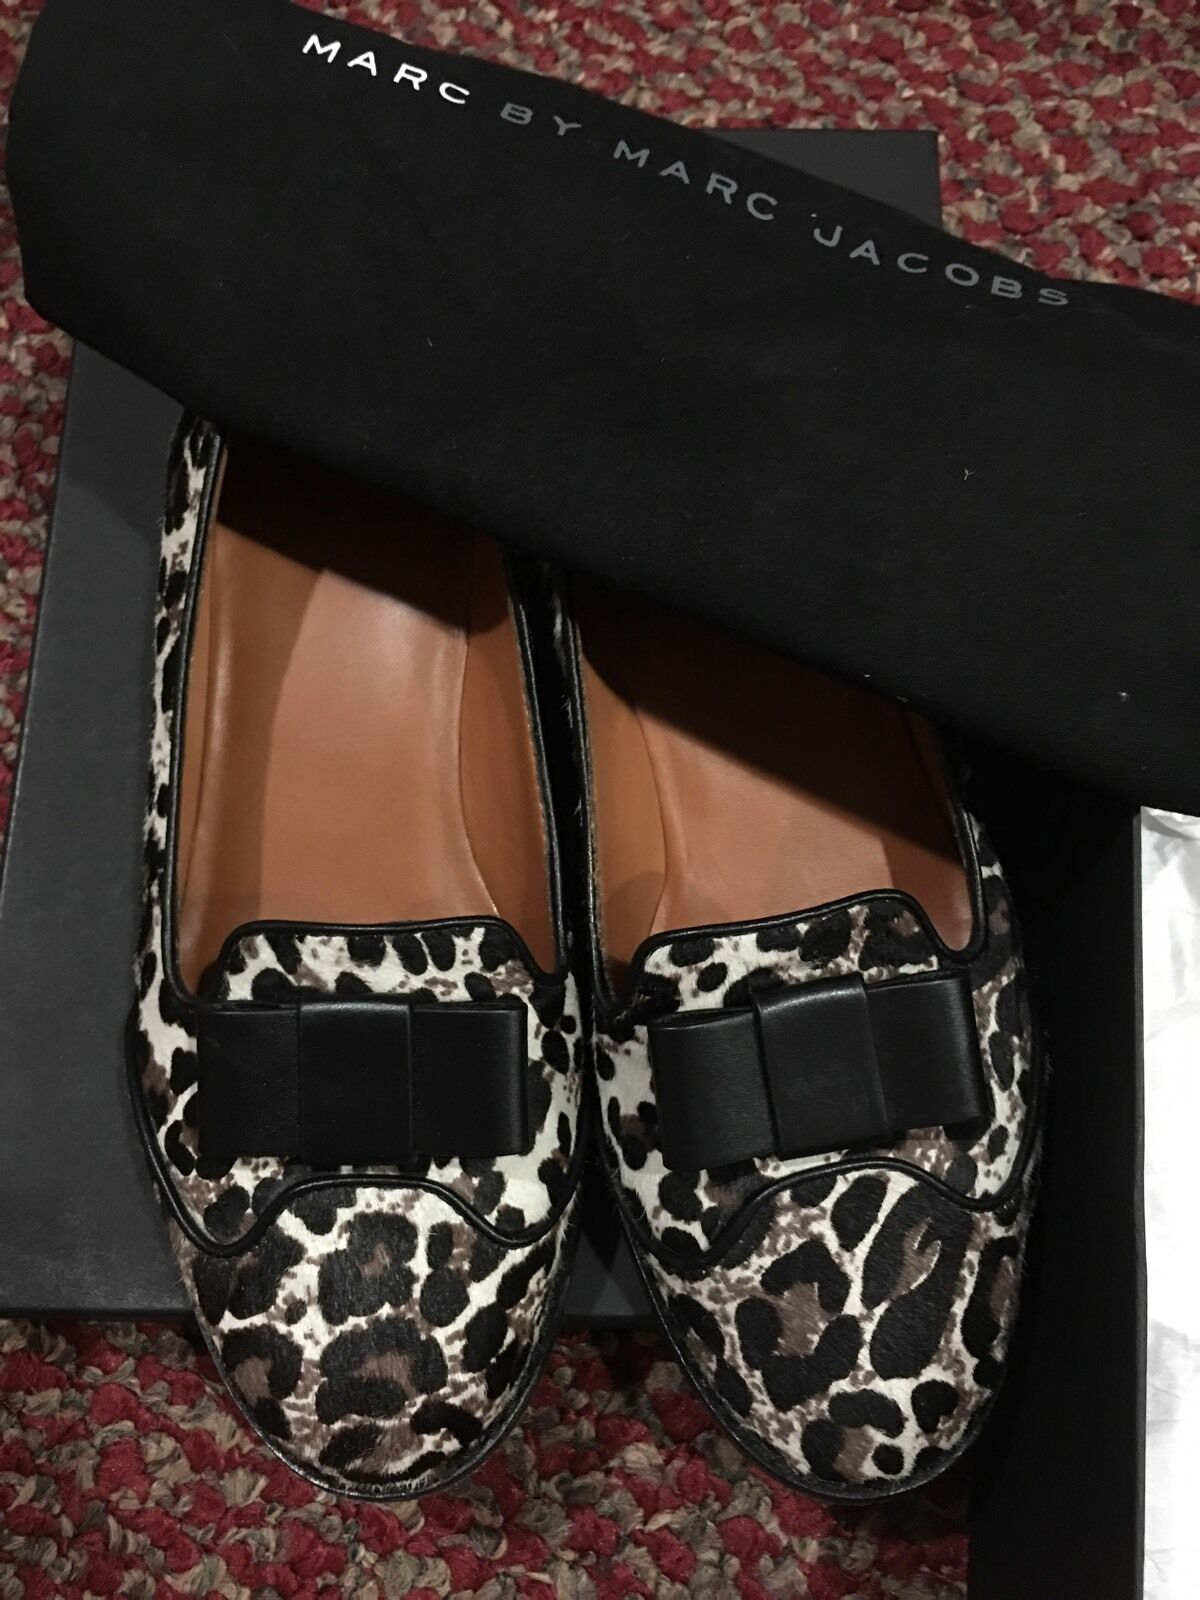 Used Authentic  Marc By Marc Jacobs Leopard Loafer 38.5 8.5